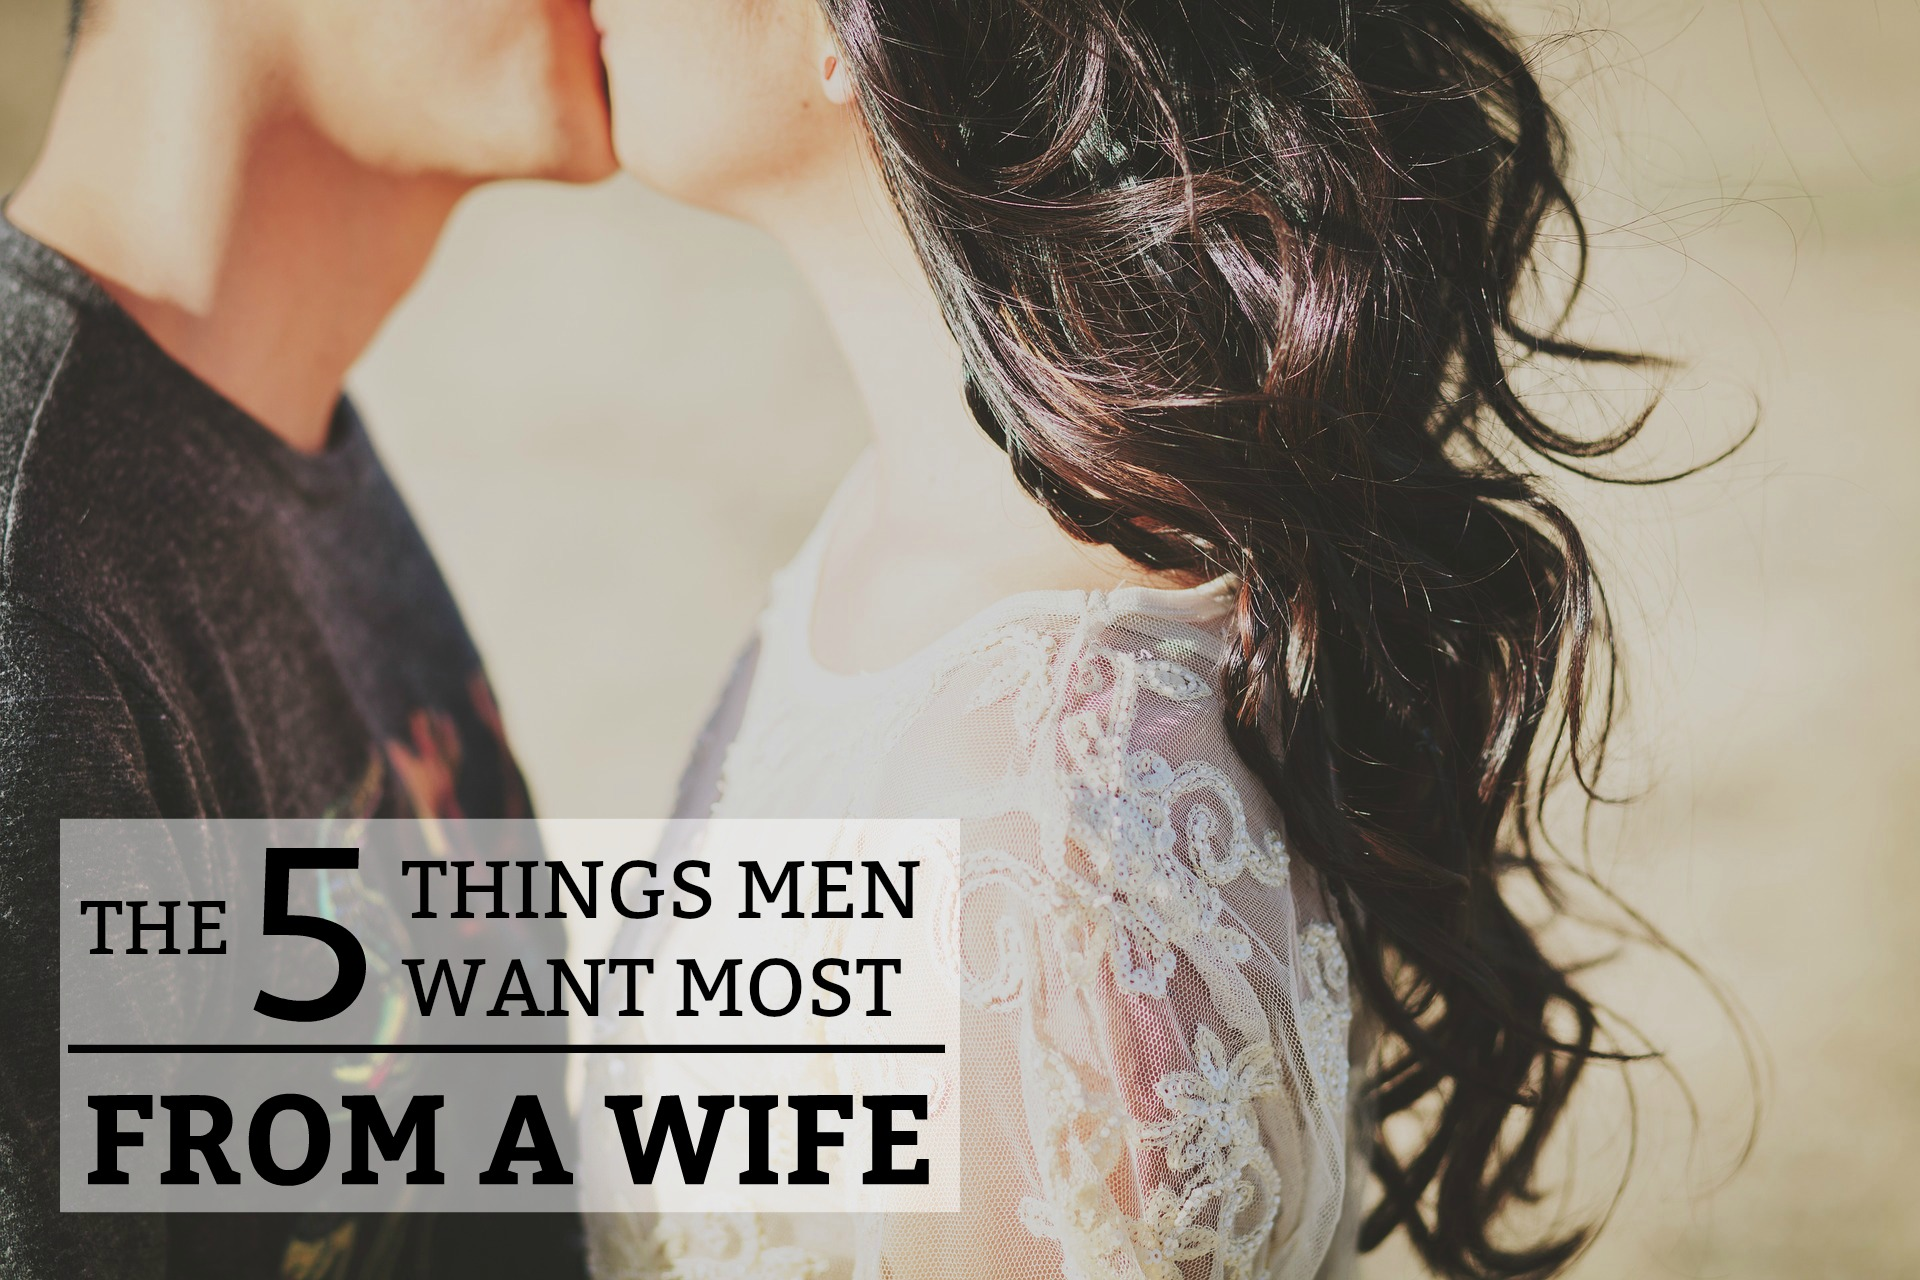 The 5 Things Men Want Most from a Wife - a practical guide to understanding the wants and needs of your husband. www.tradingaverage.com